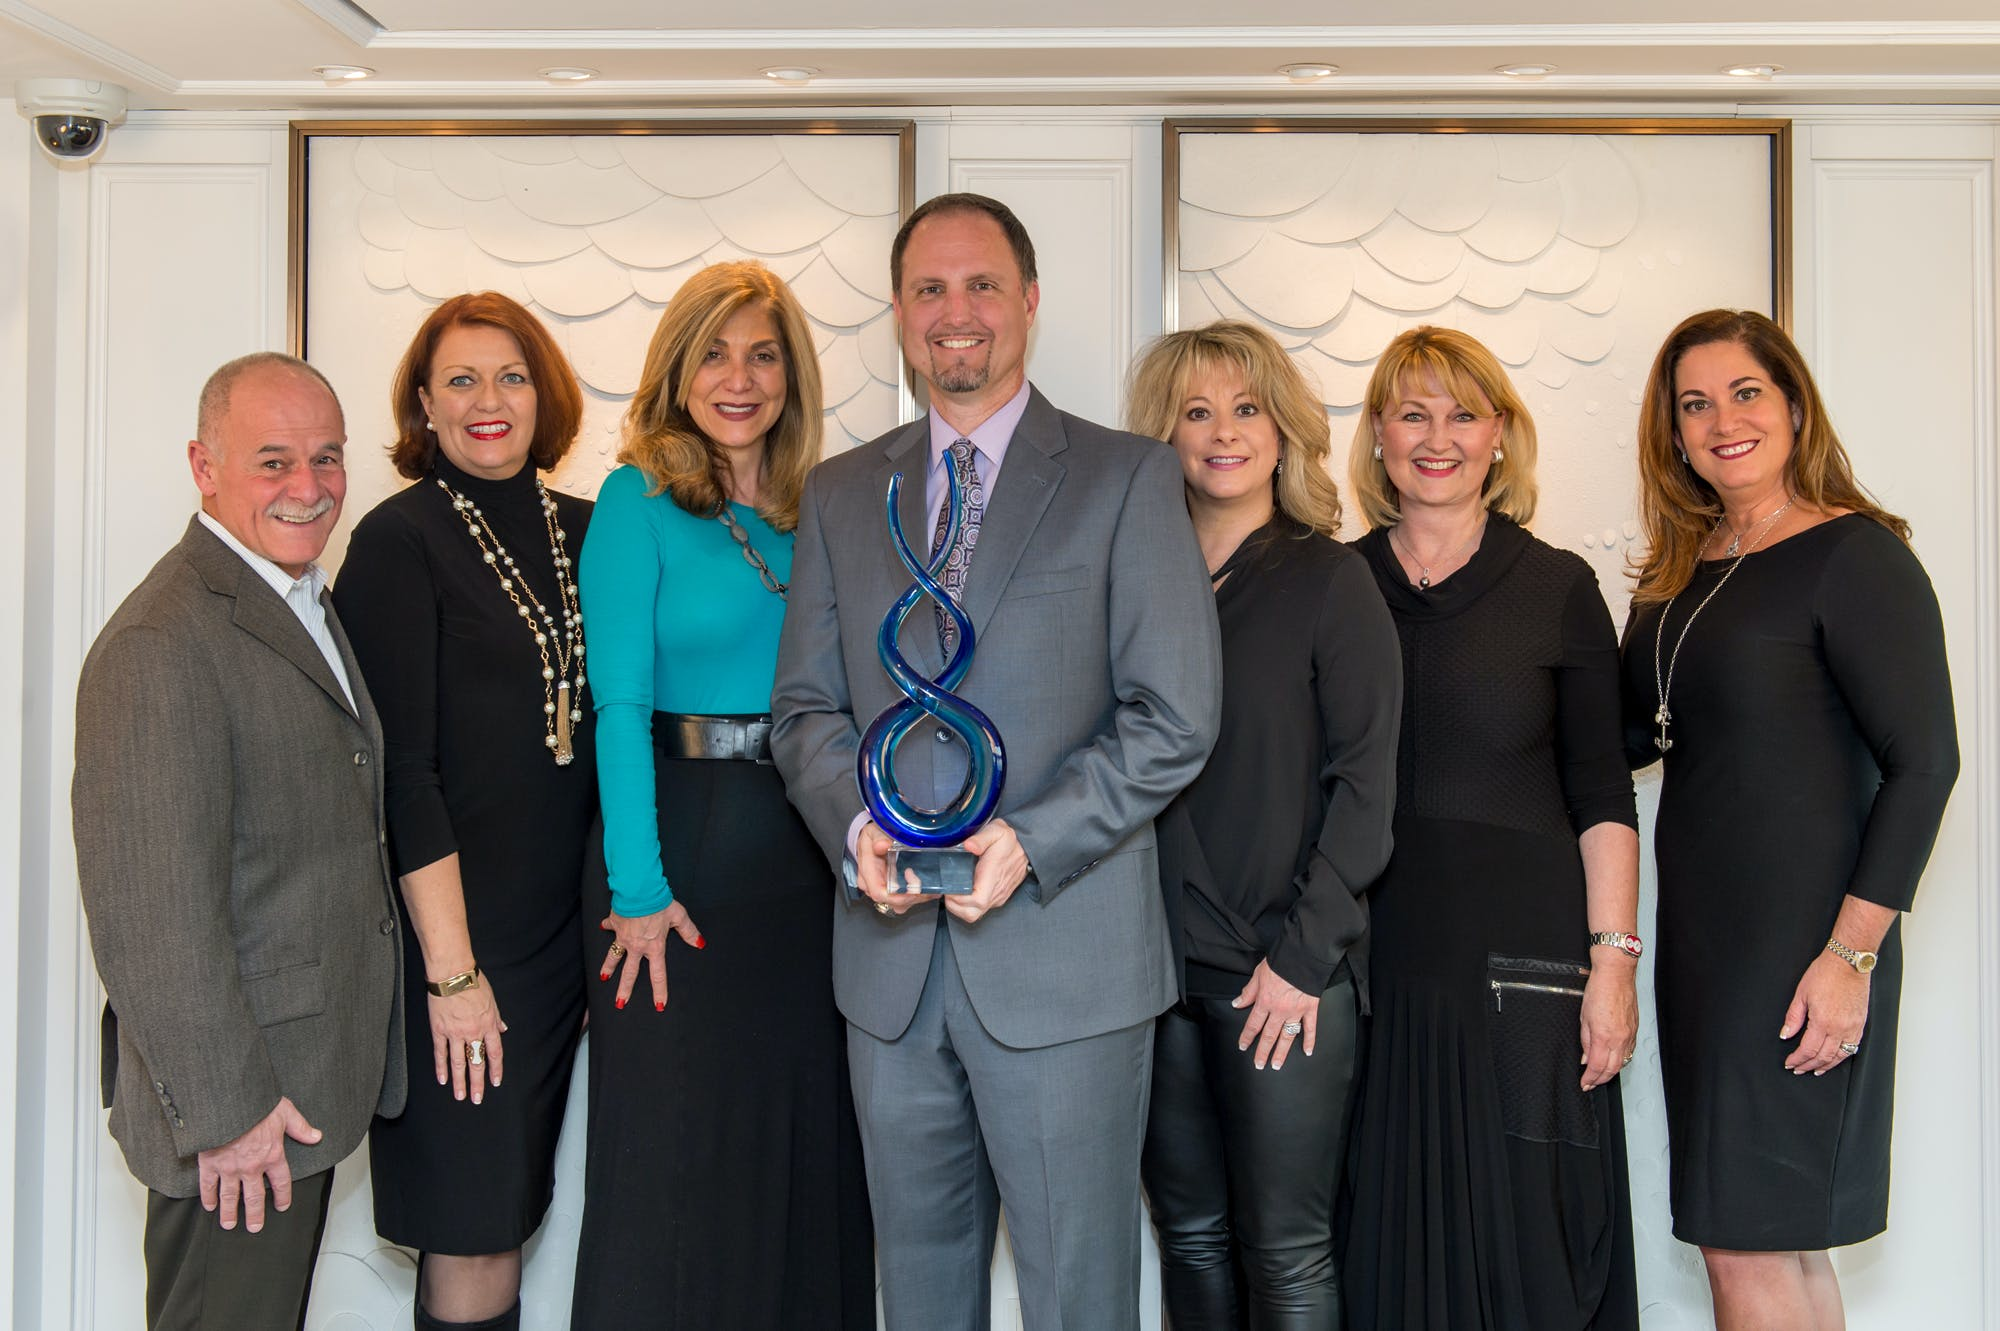 Ryan Hansen, President of Cruise Insider (center) with Crystal's Executive Team & Edie Rodriguez, Crystal's President & CEO